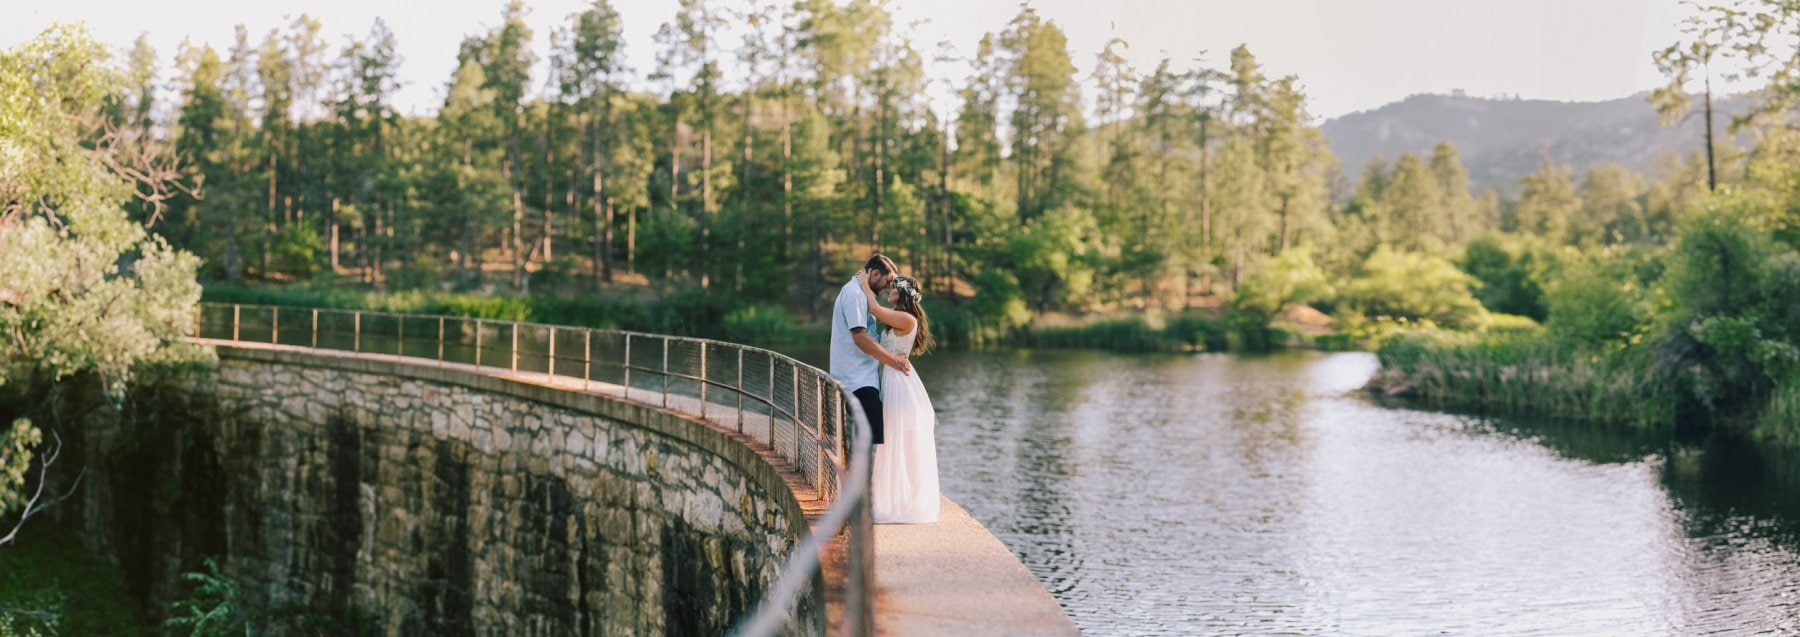 Arizona-adventurous-elopement_0020